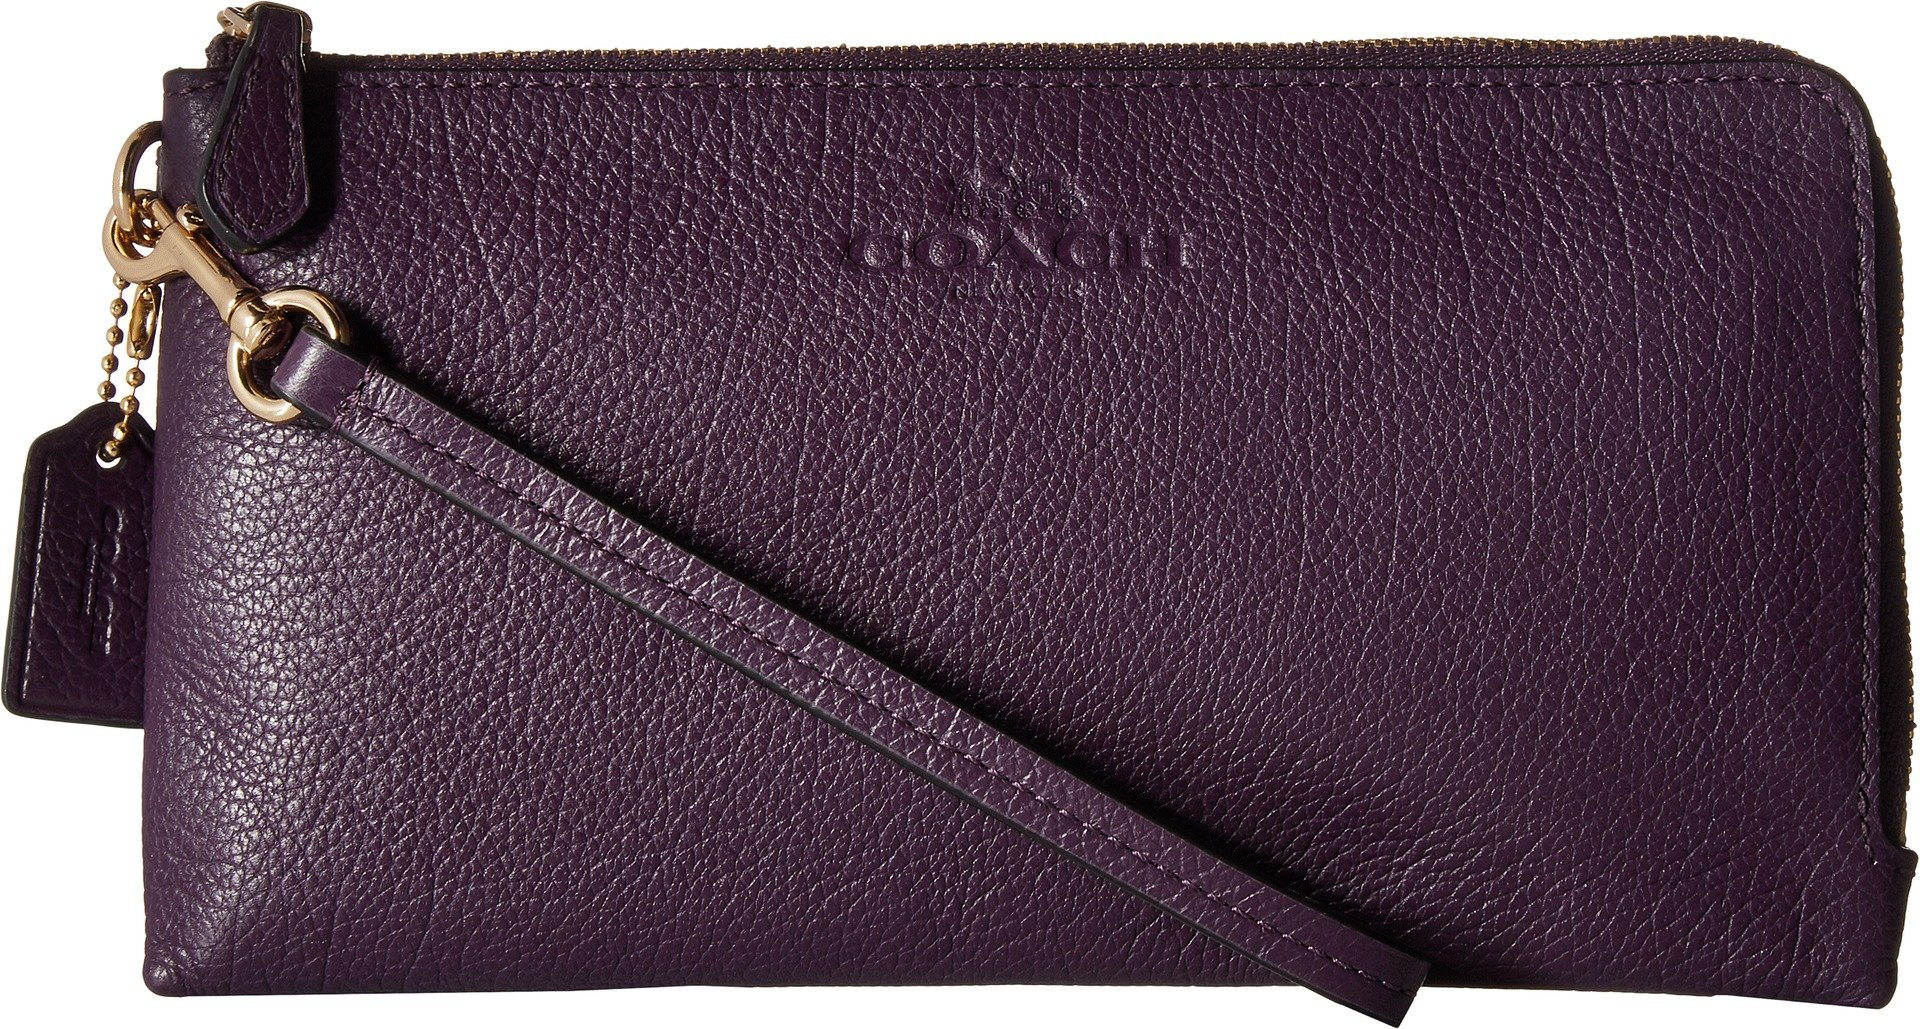 COACH Women's Pebbled Leather Double Zip Wallet Im/Aubergine One Size